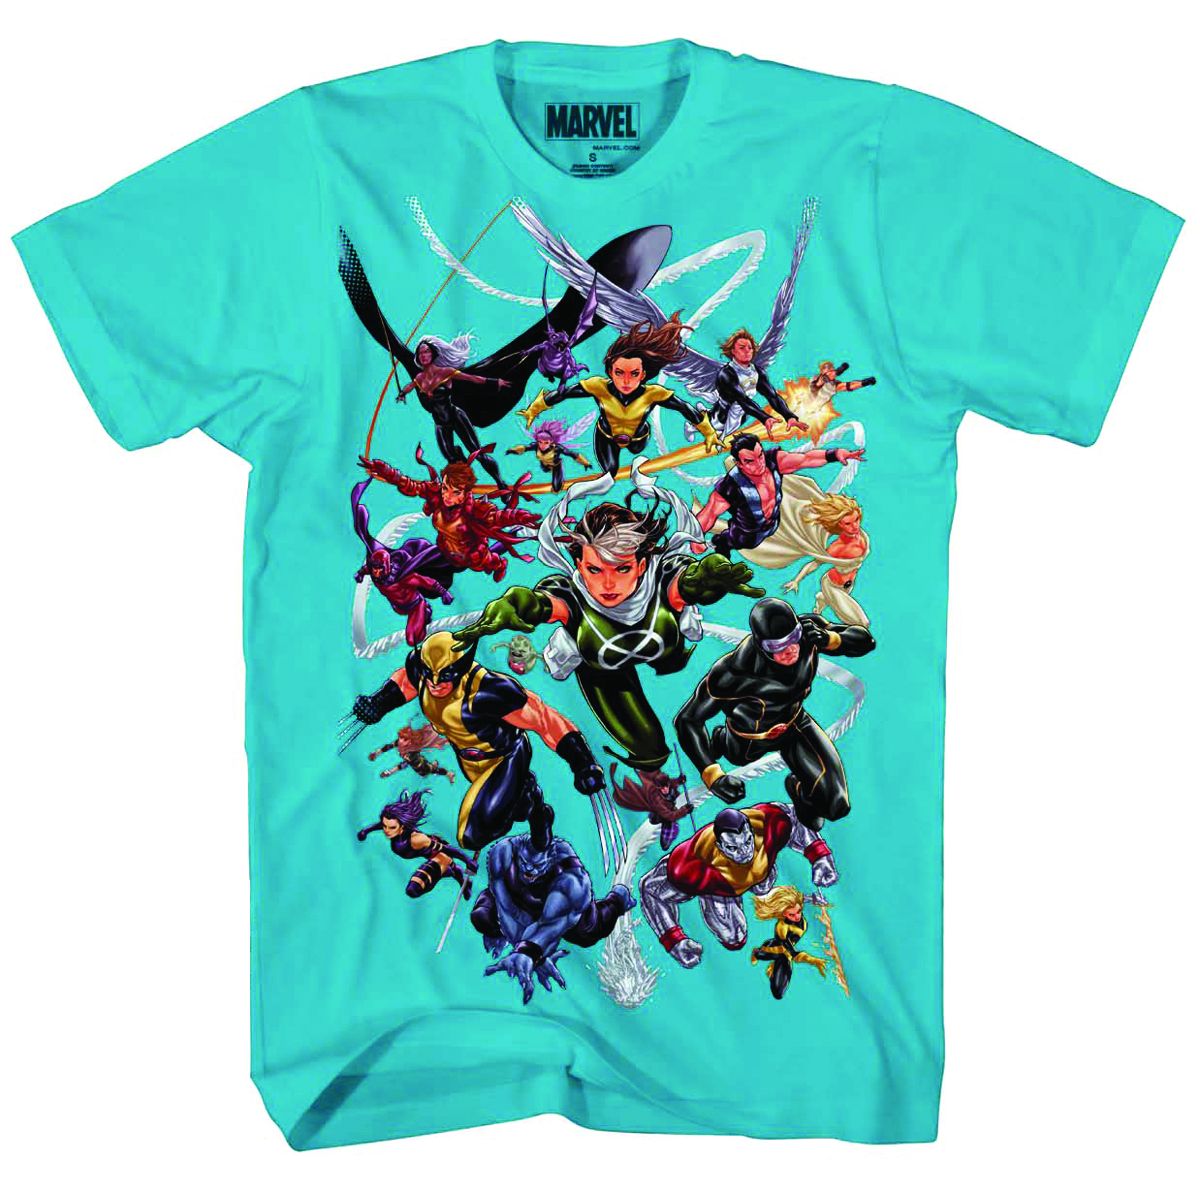 X-MEN FLYING FORWARD PX TURQ T/S XL